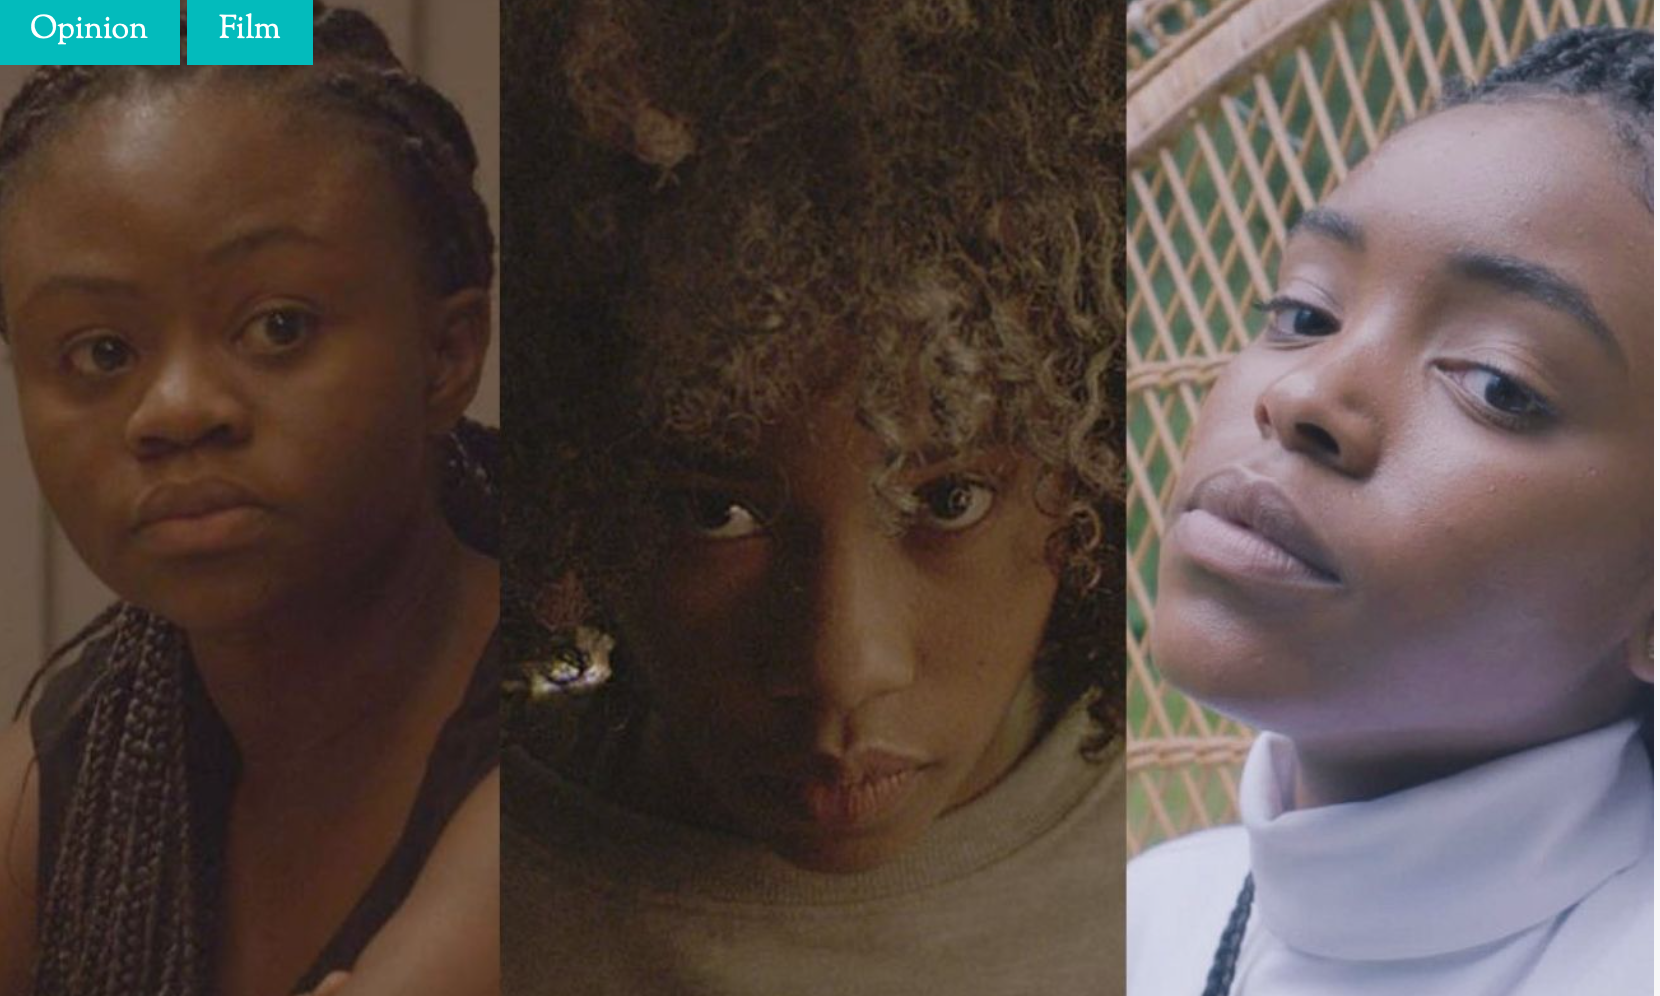 Films About Black Girls